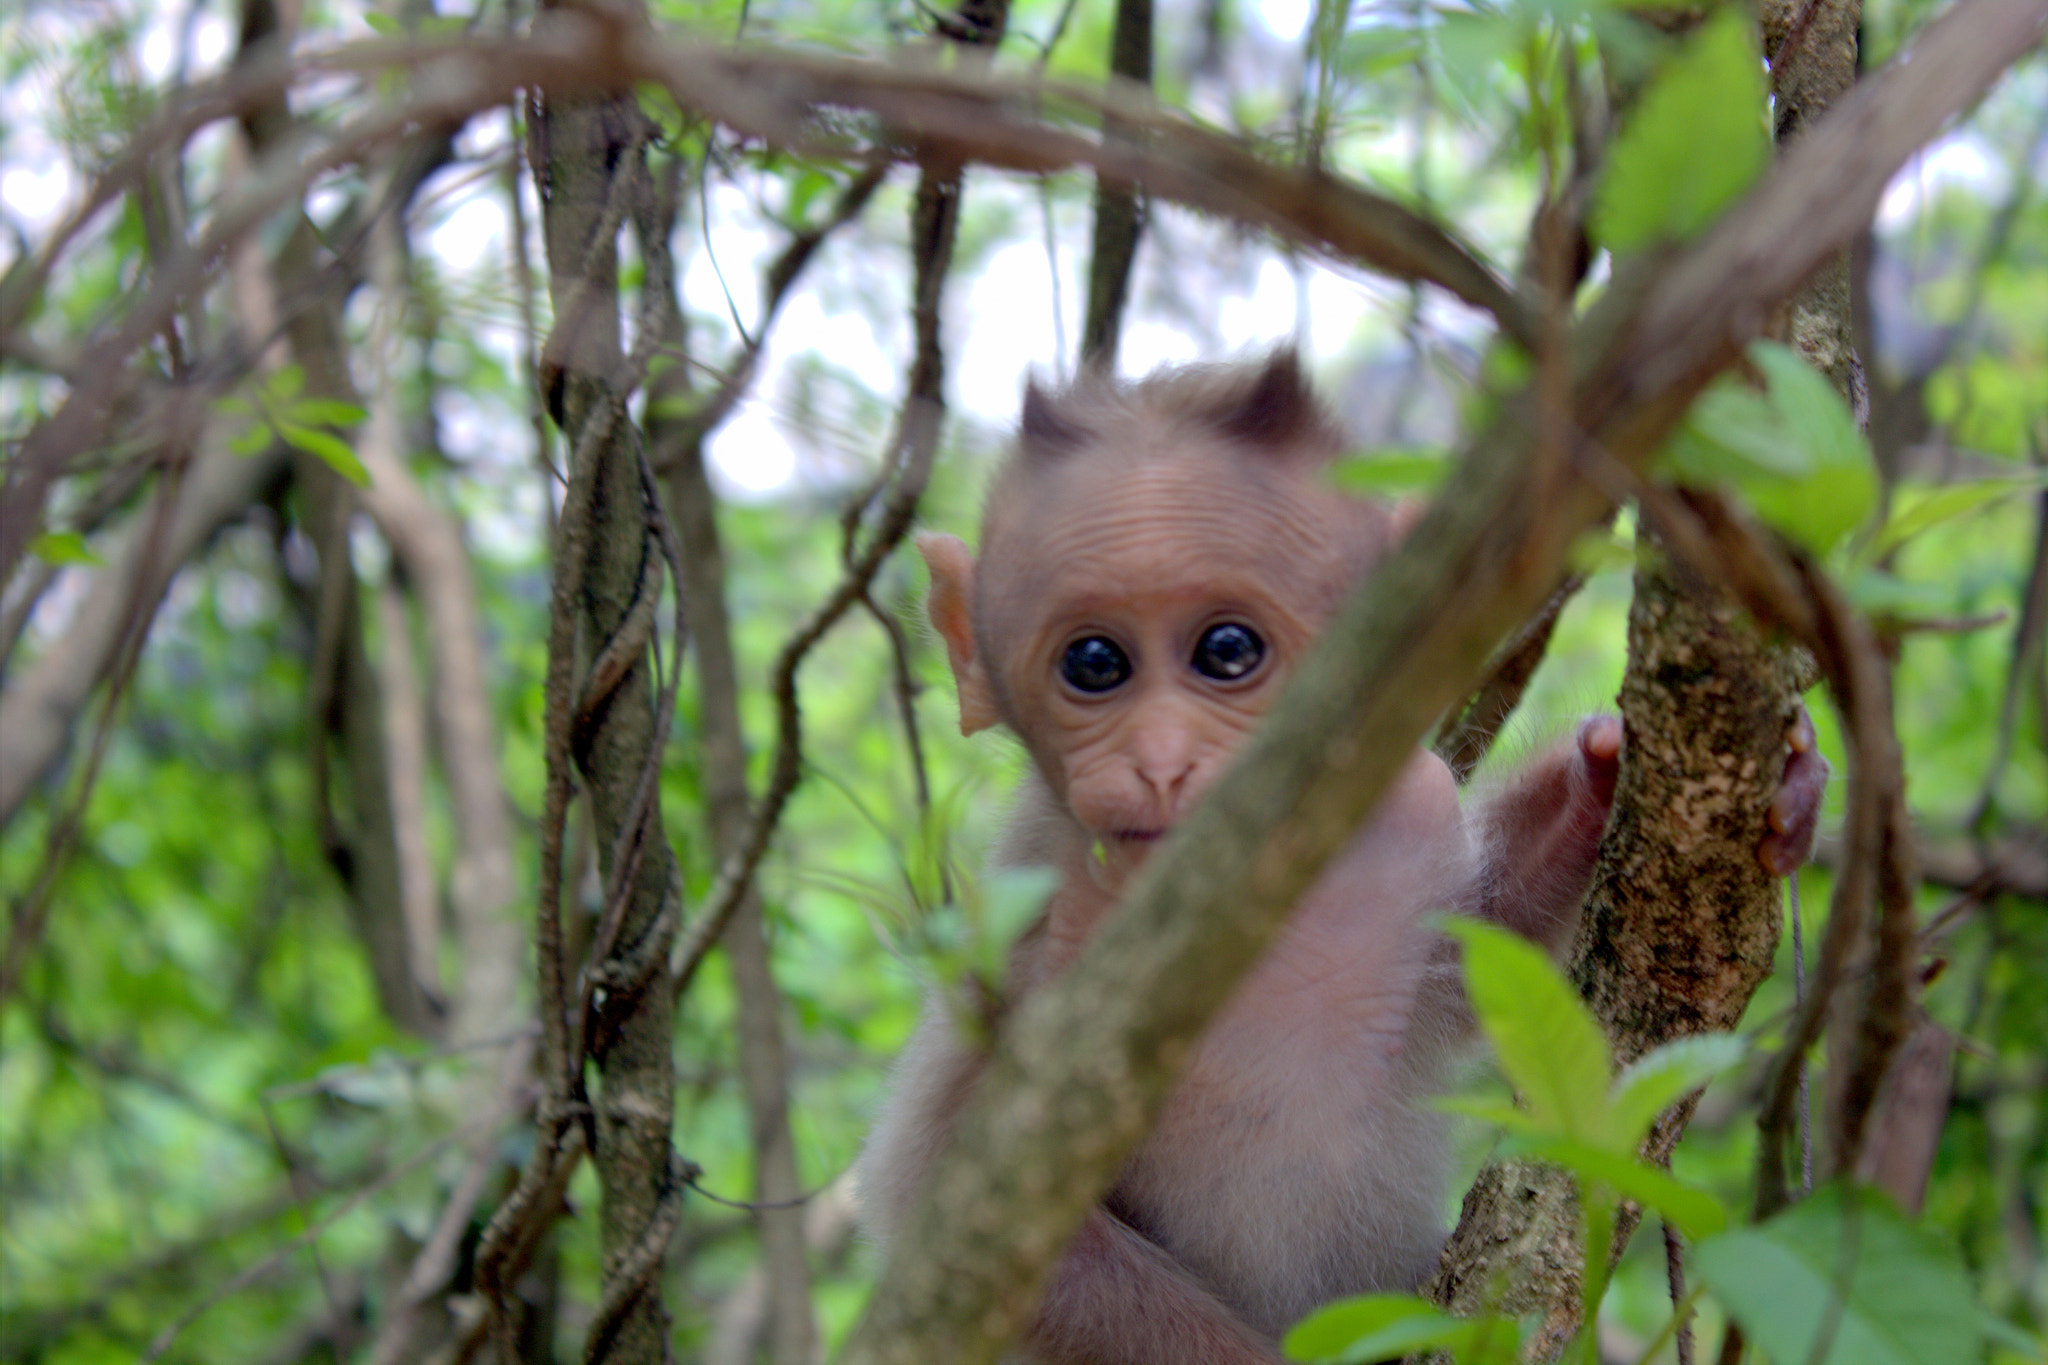 Photograph Infant Monkey by Karthic K on 500px